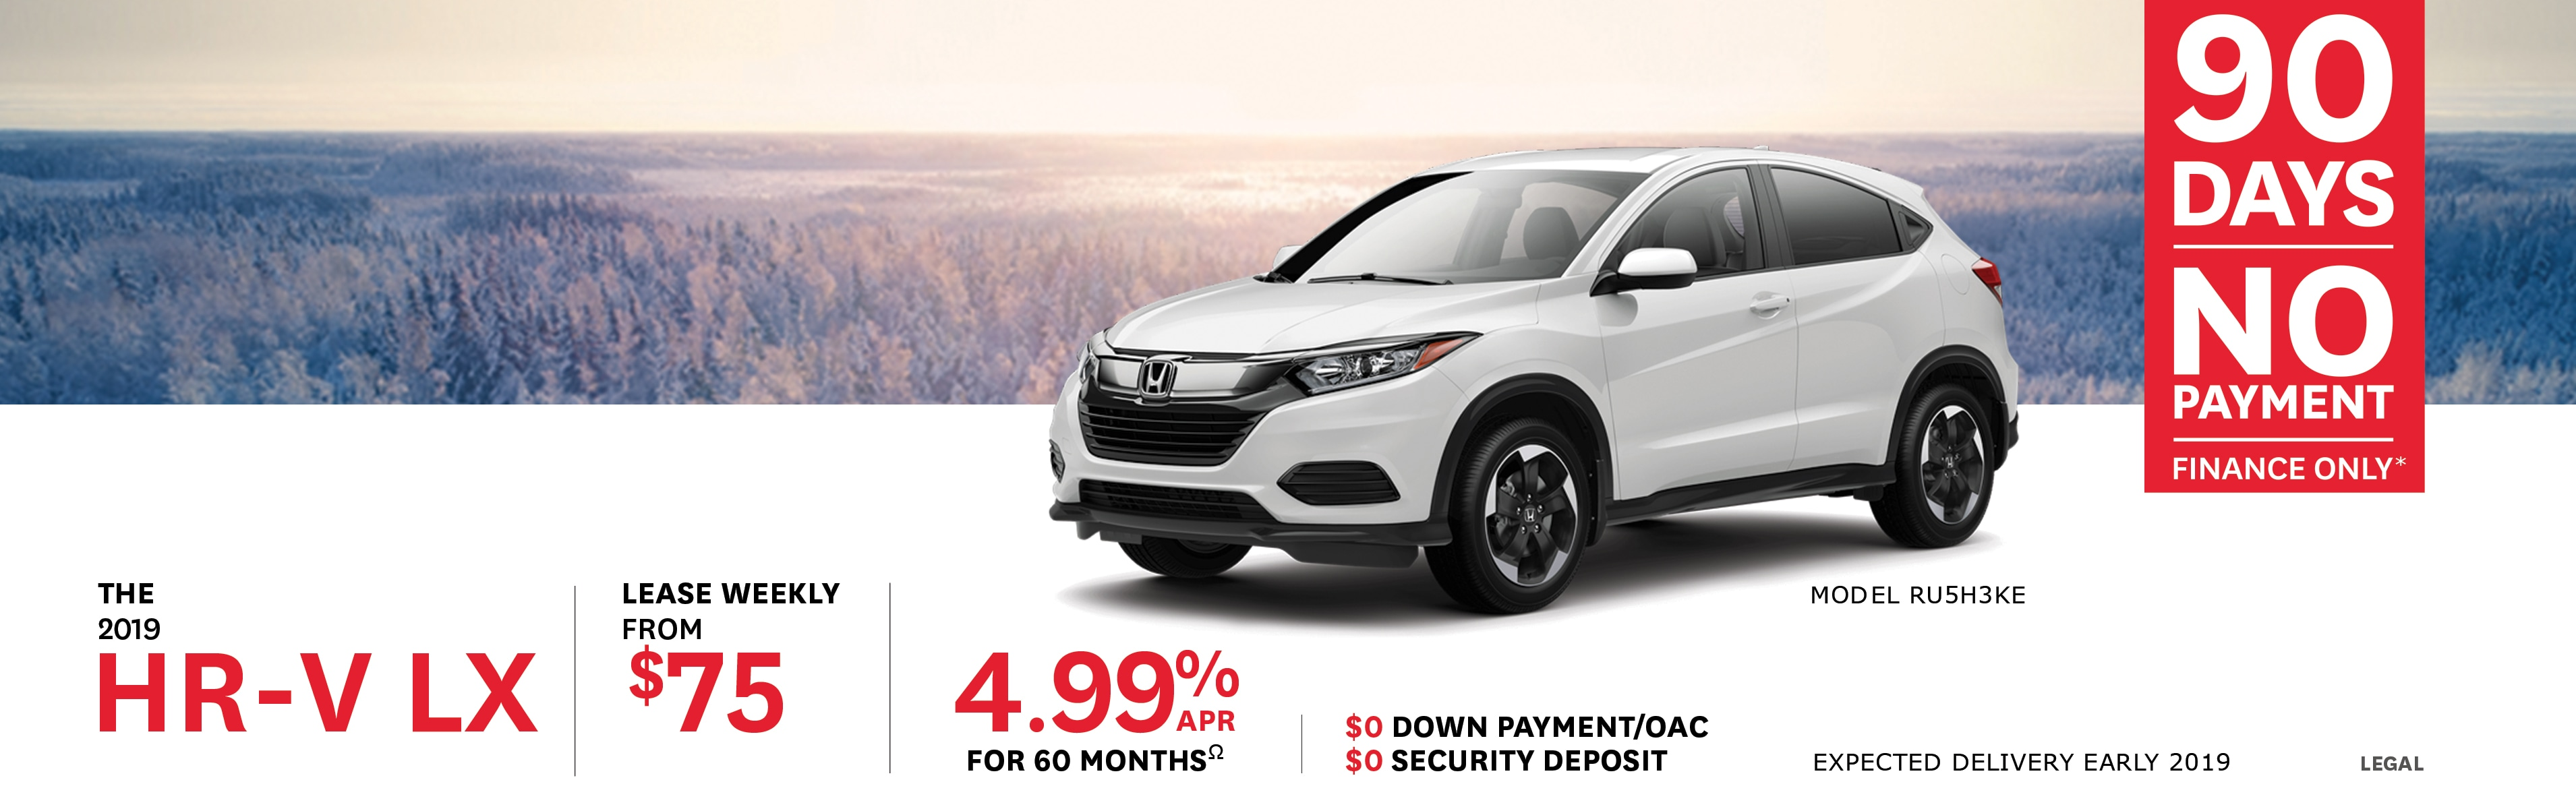 Action Honda New And Used Honda Dealership In Scarborough Toronto